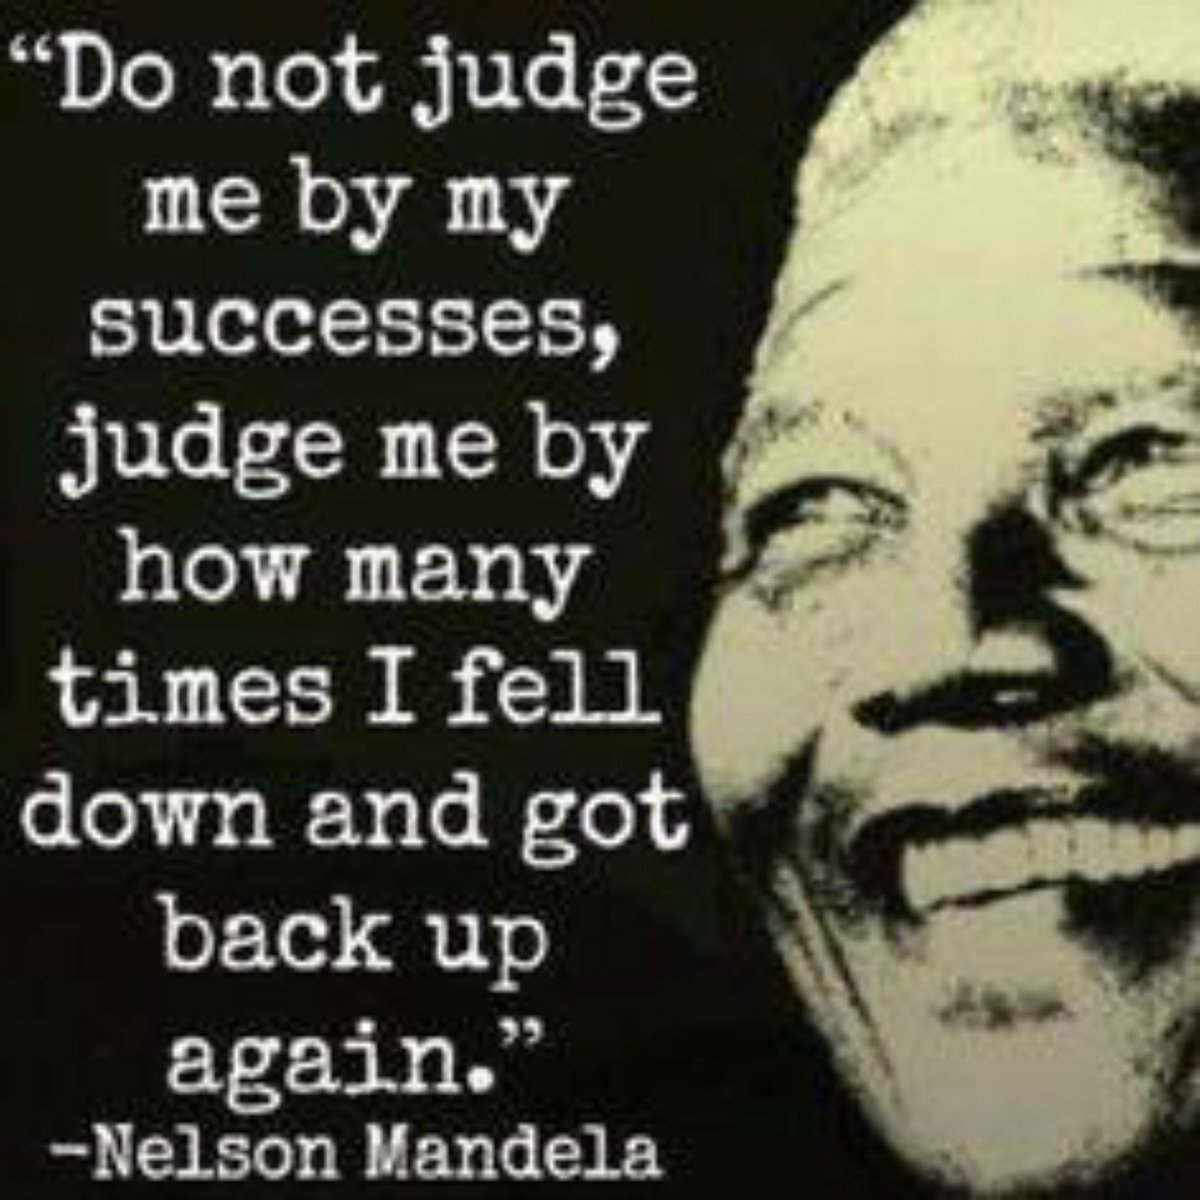 Do not judge me by my successes, judge me by how many times I fell down and got back up again. - Nelson Mandela